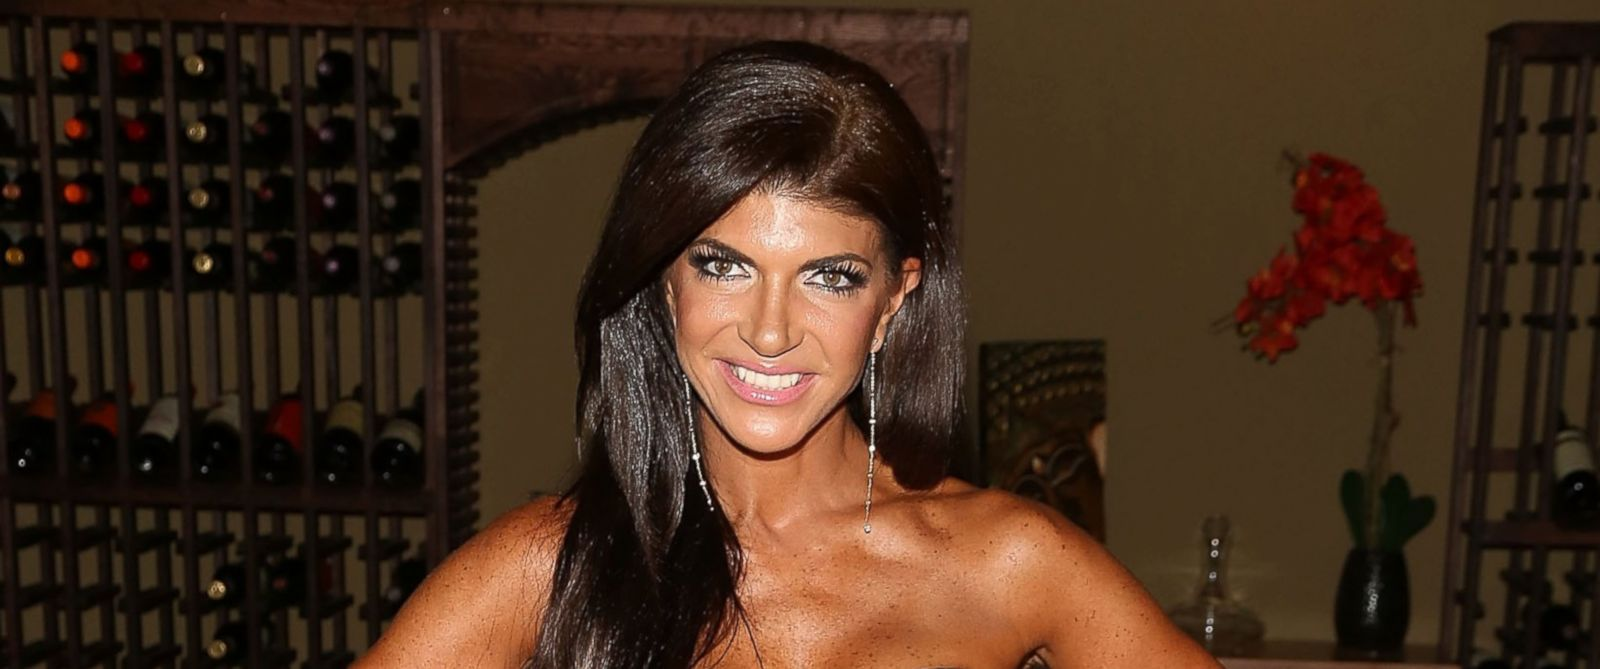 """PHOTO: Teresa Giudice attends the """"Real Housewives Of New Jersey"""" Season Six Premiere Party, July 13, 2014 in Parsippany, N.J."""